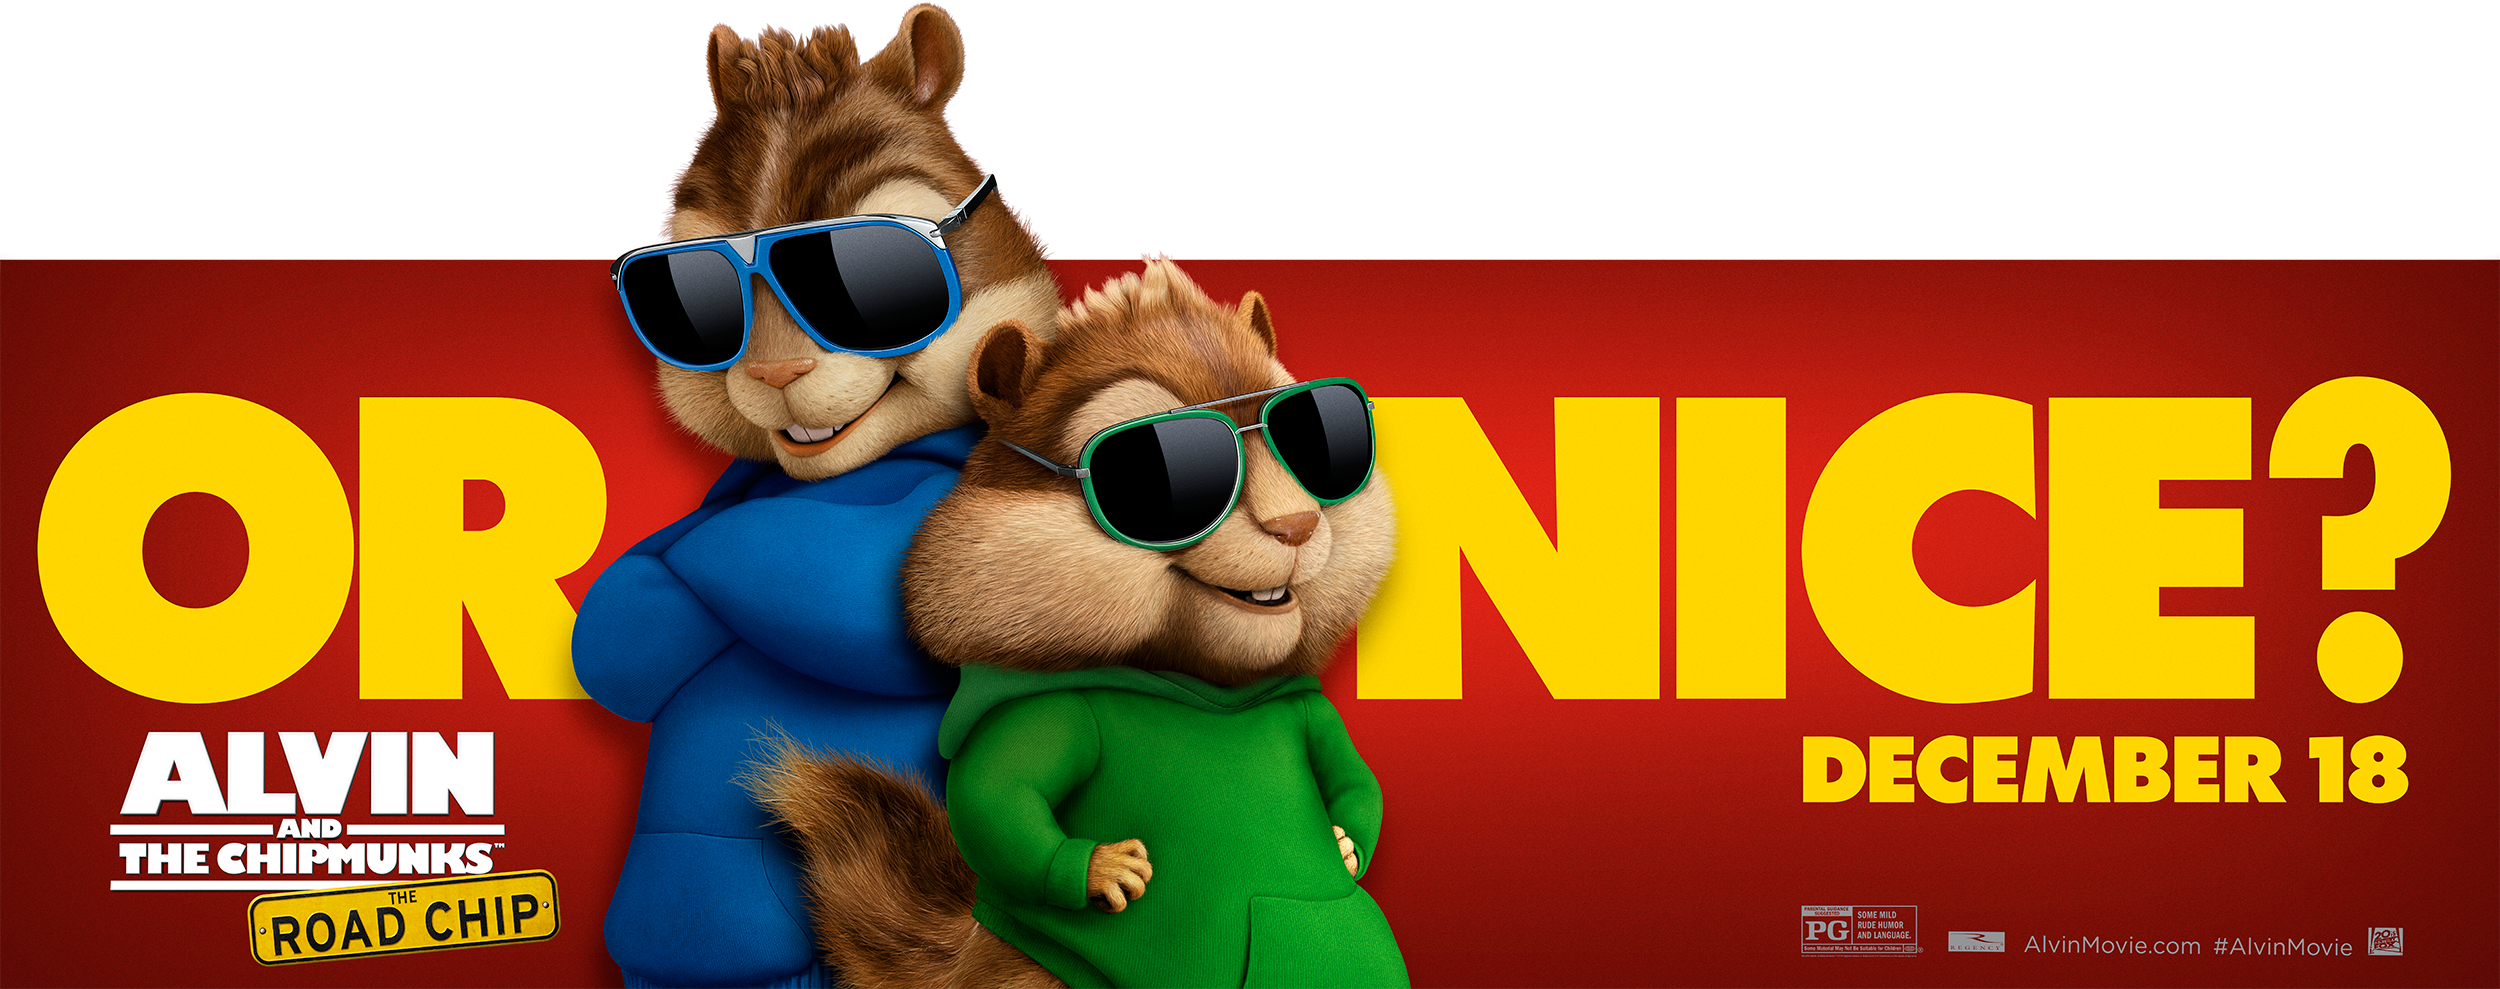 Alvin and the Chipmunks: The Road Chip | Billboard Finishing & Illustration